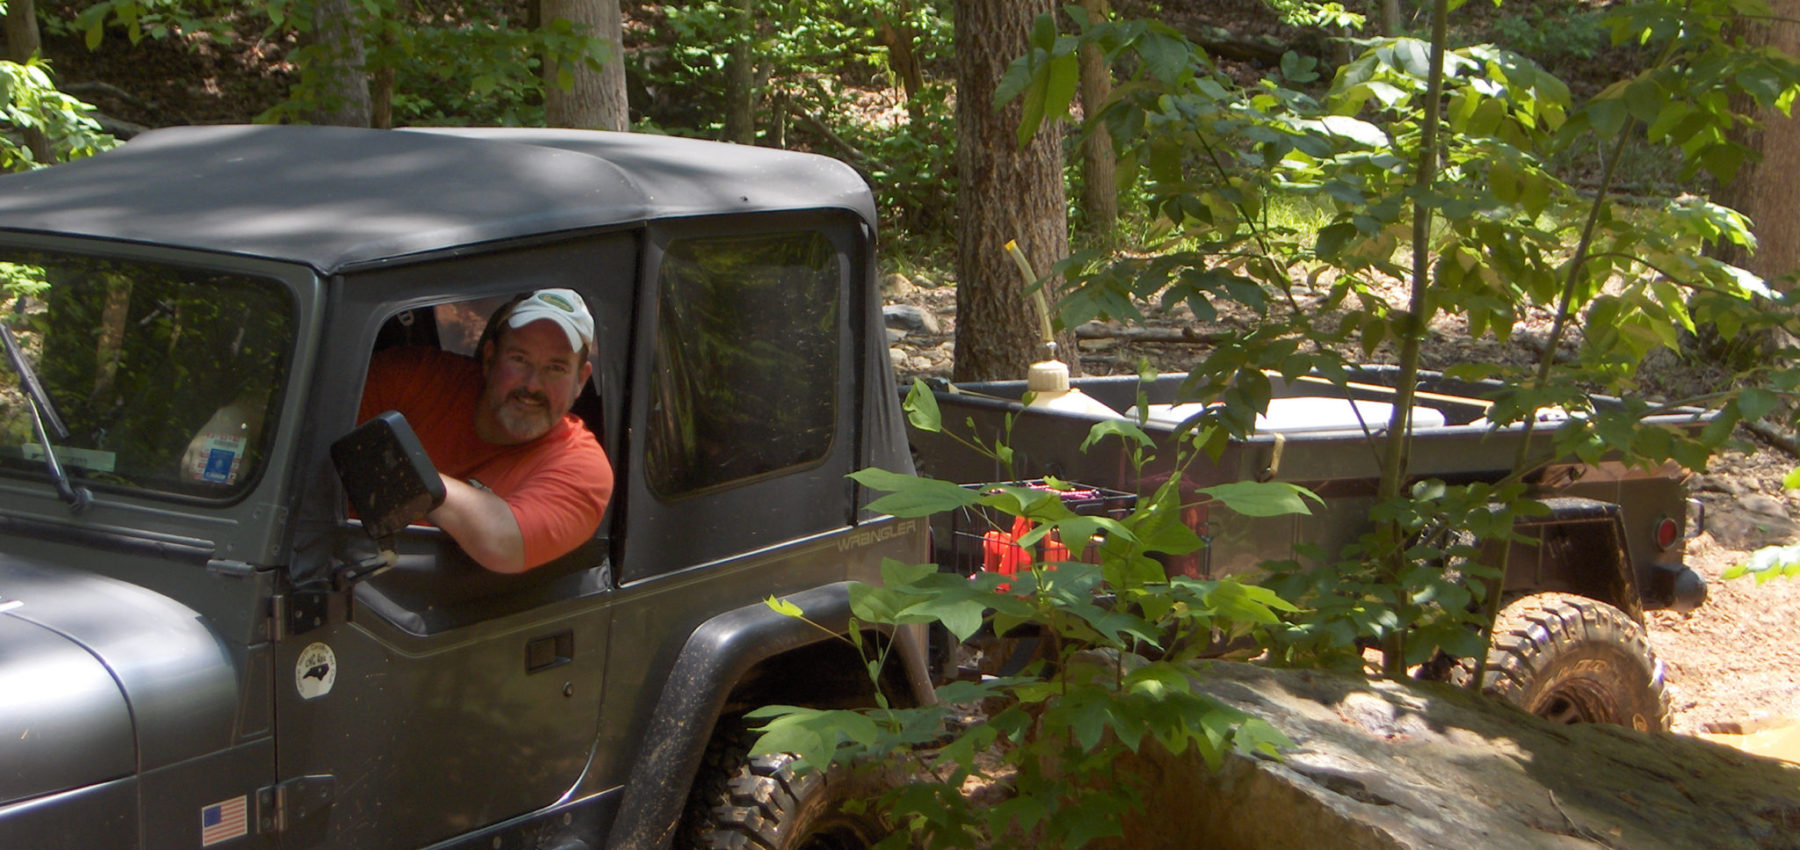 Ralph with trailer at Uwharrie - central NC 4x4 trail cleanup